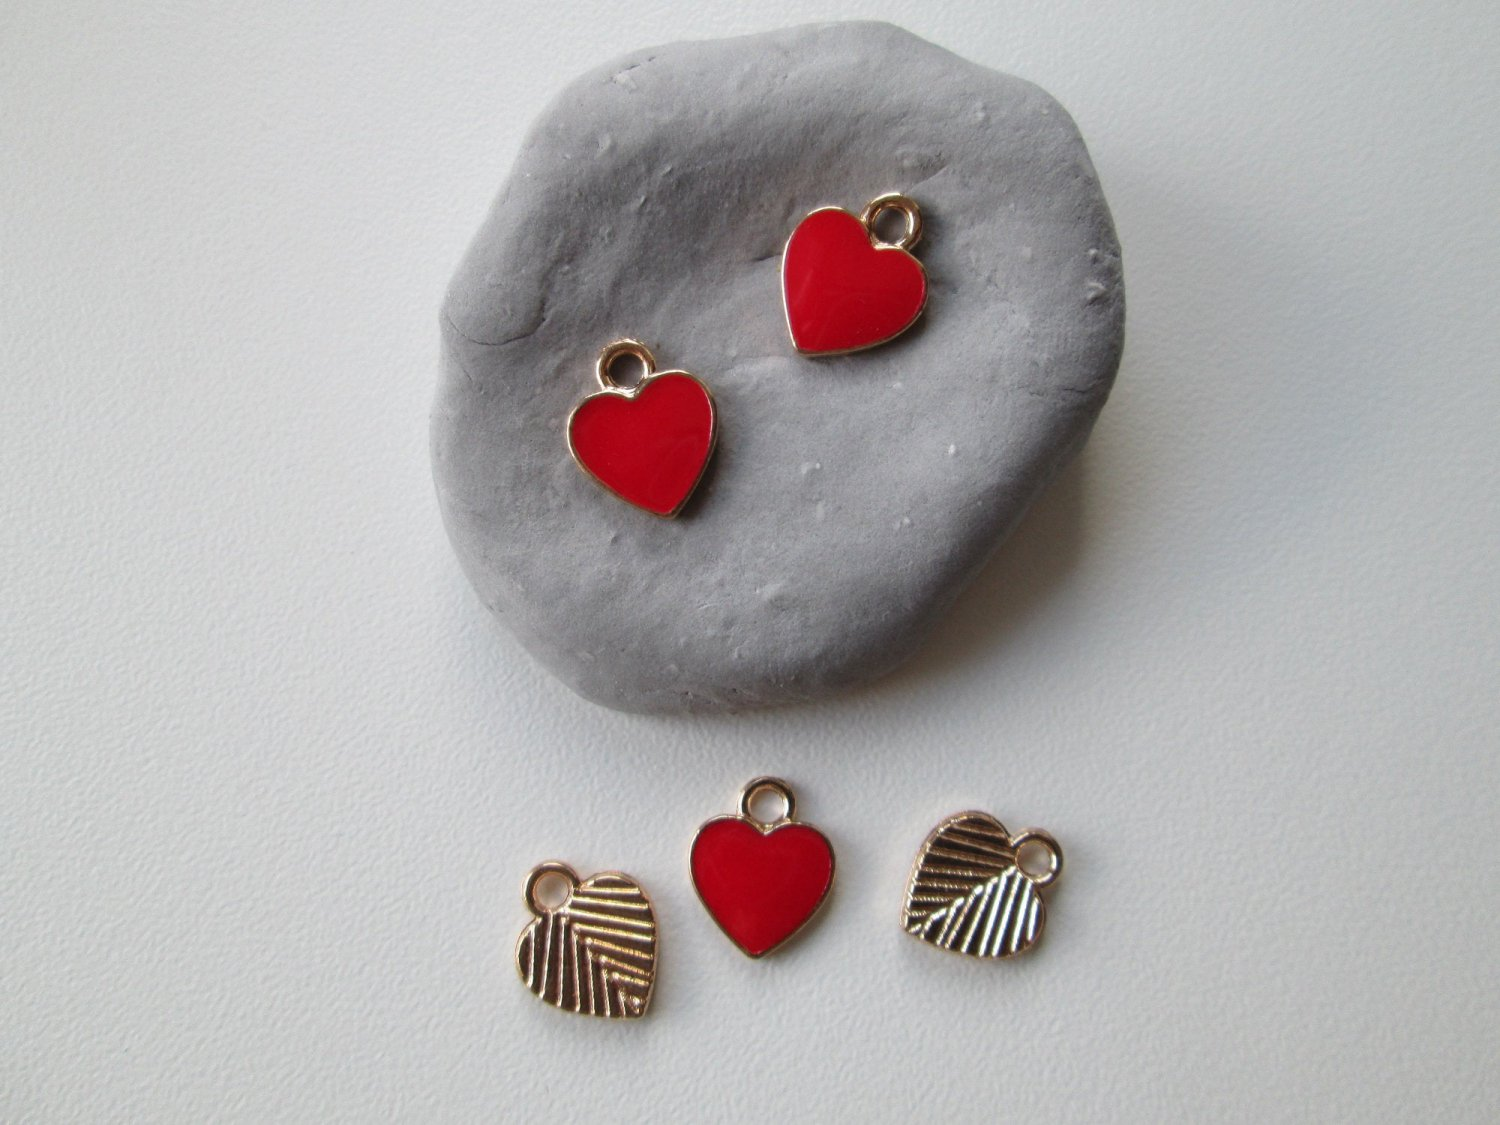 Red Enamel Hart Charm, 5 Pieces Heart Charm.